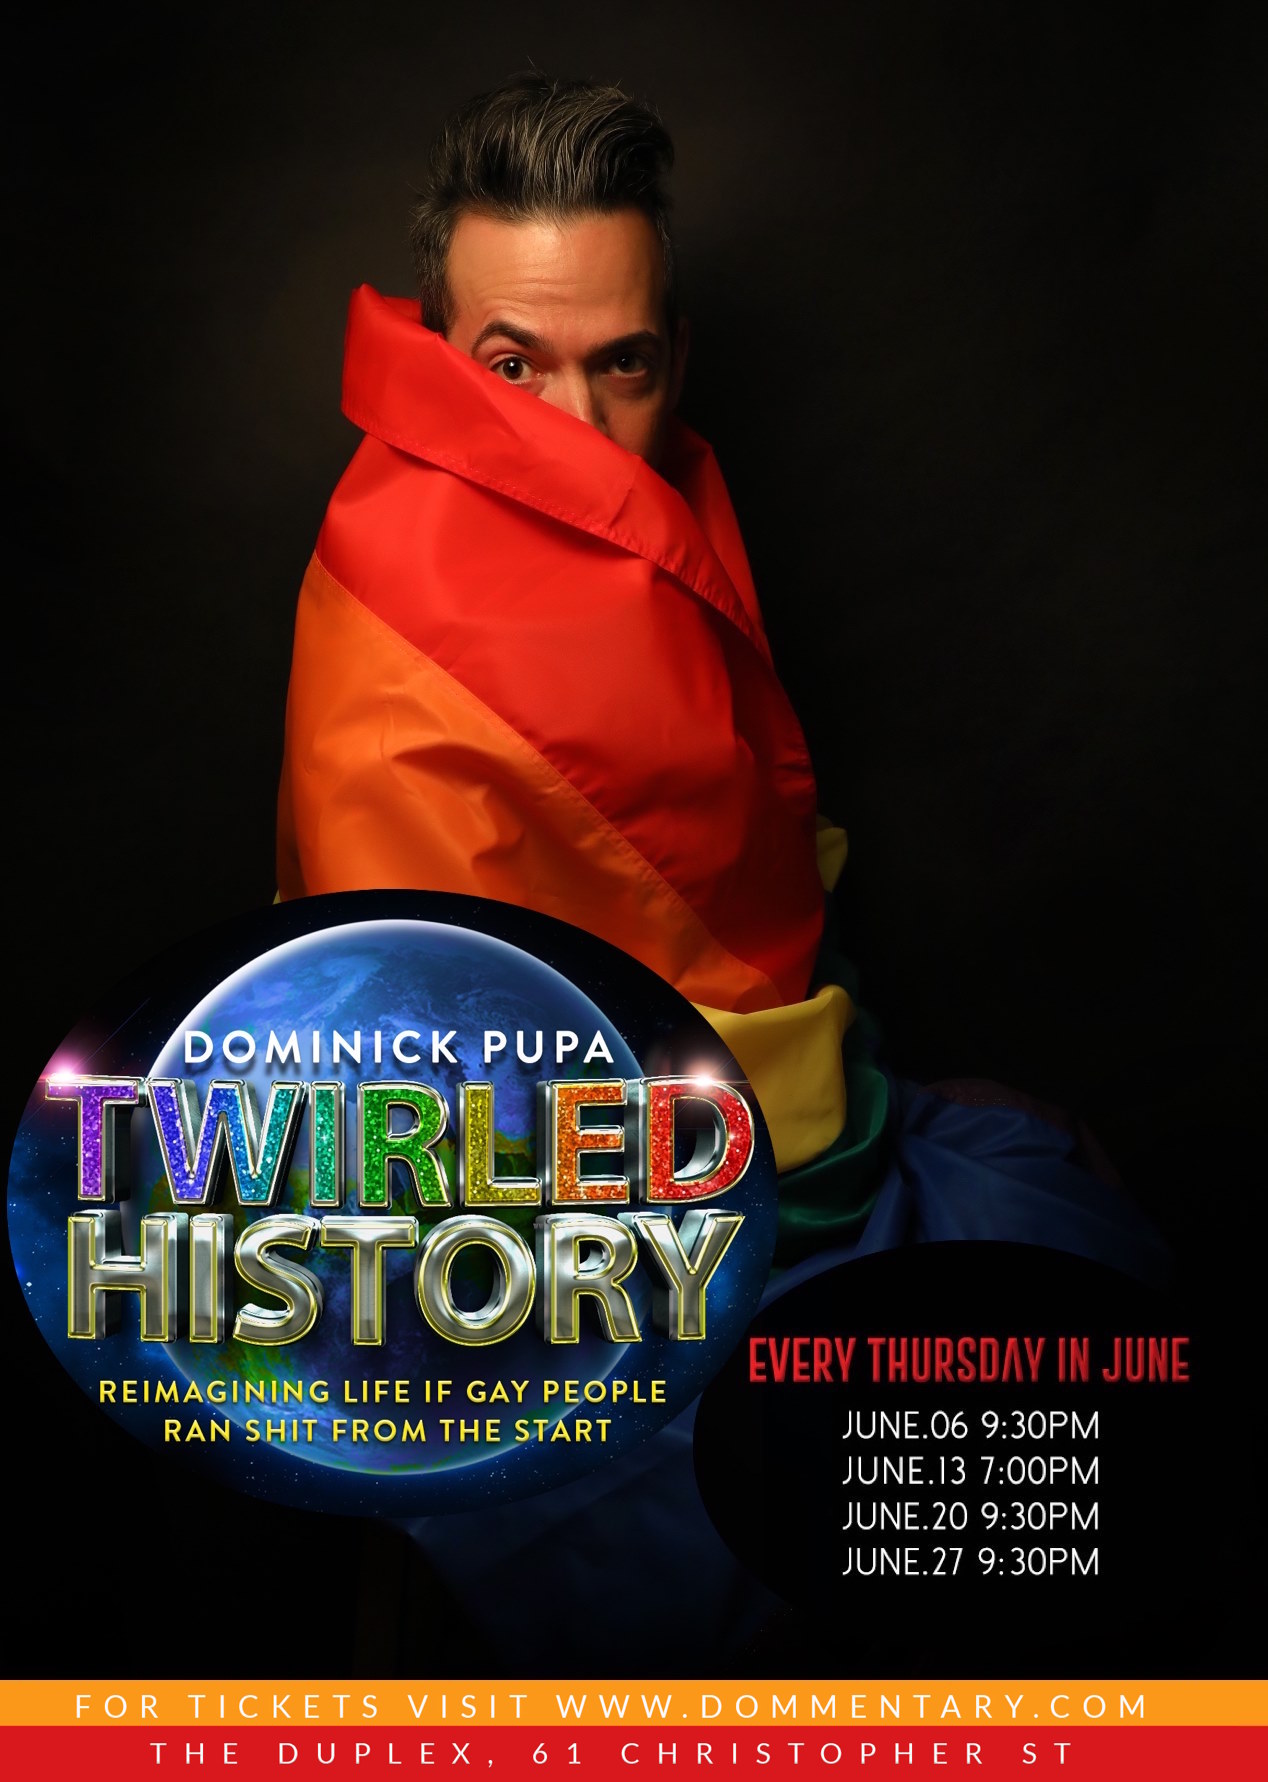 twirled history poster